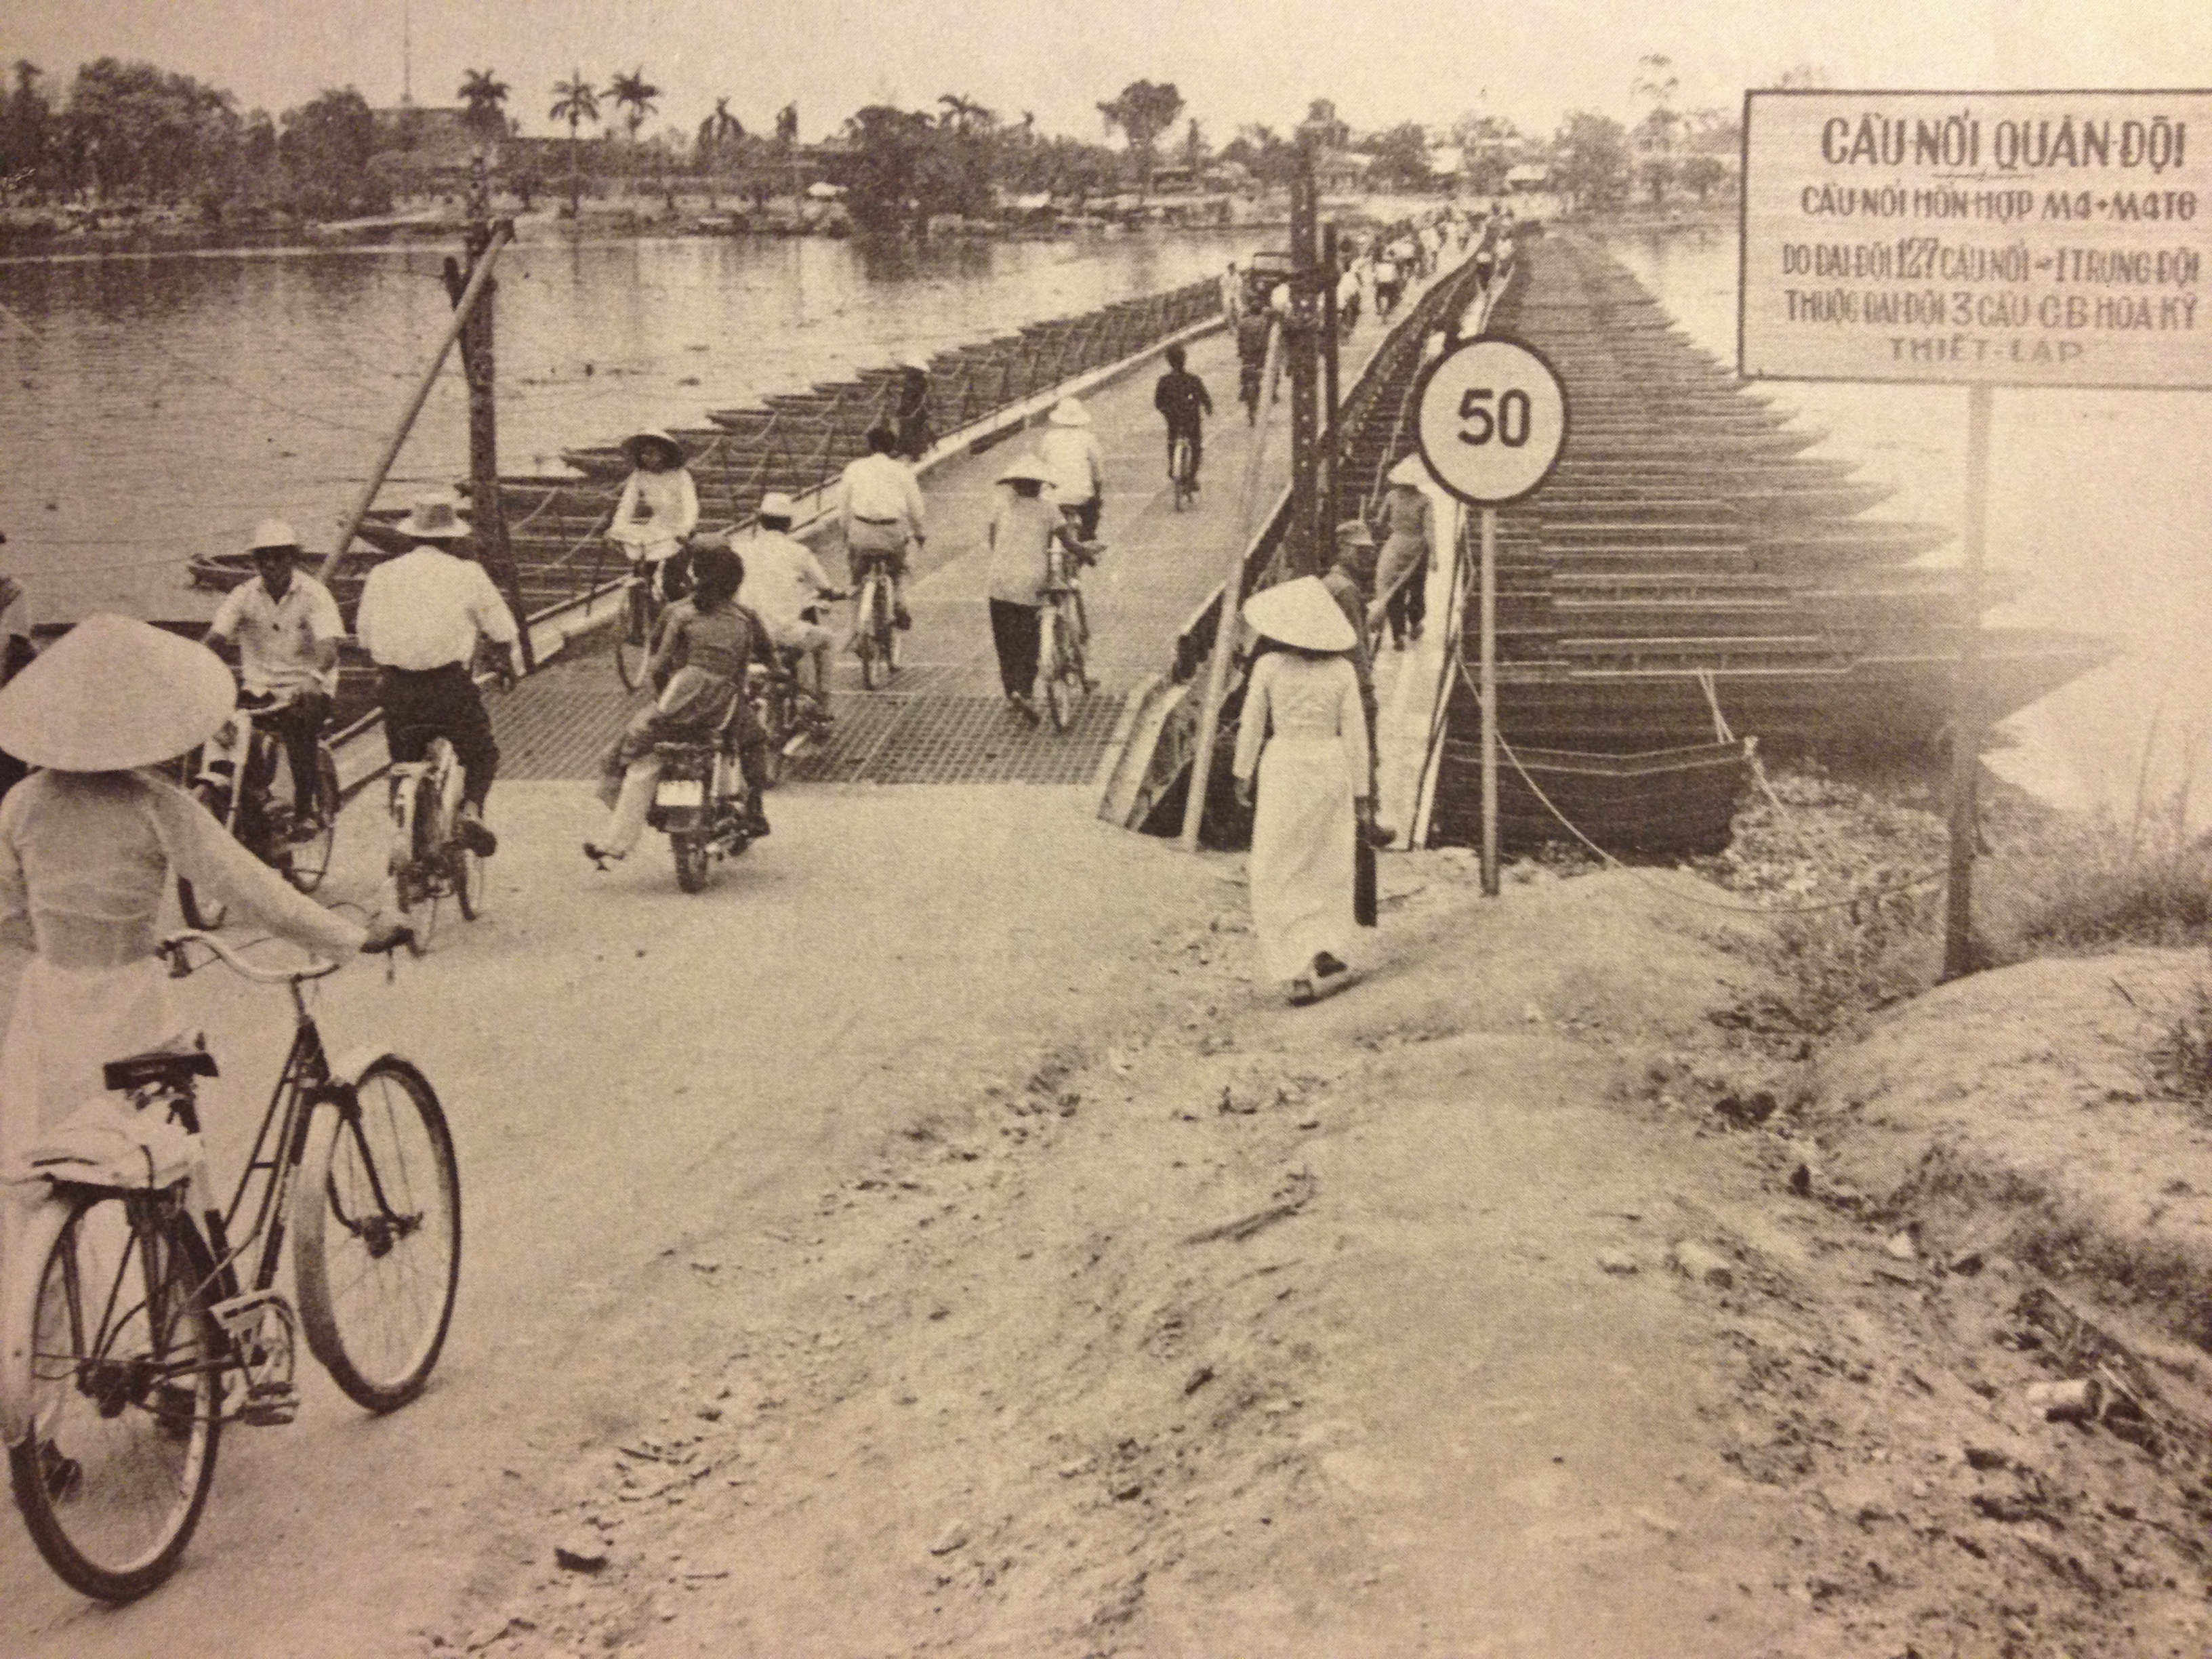 Pontoon_Bridge_over_the_Perfume_River,_H